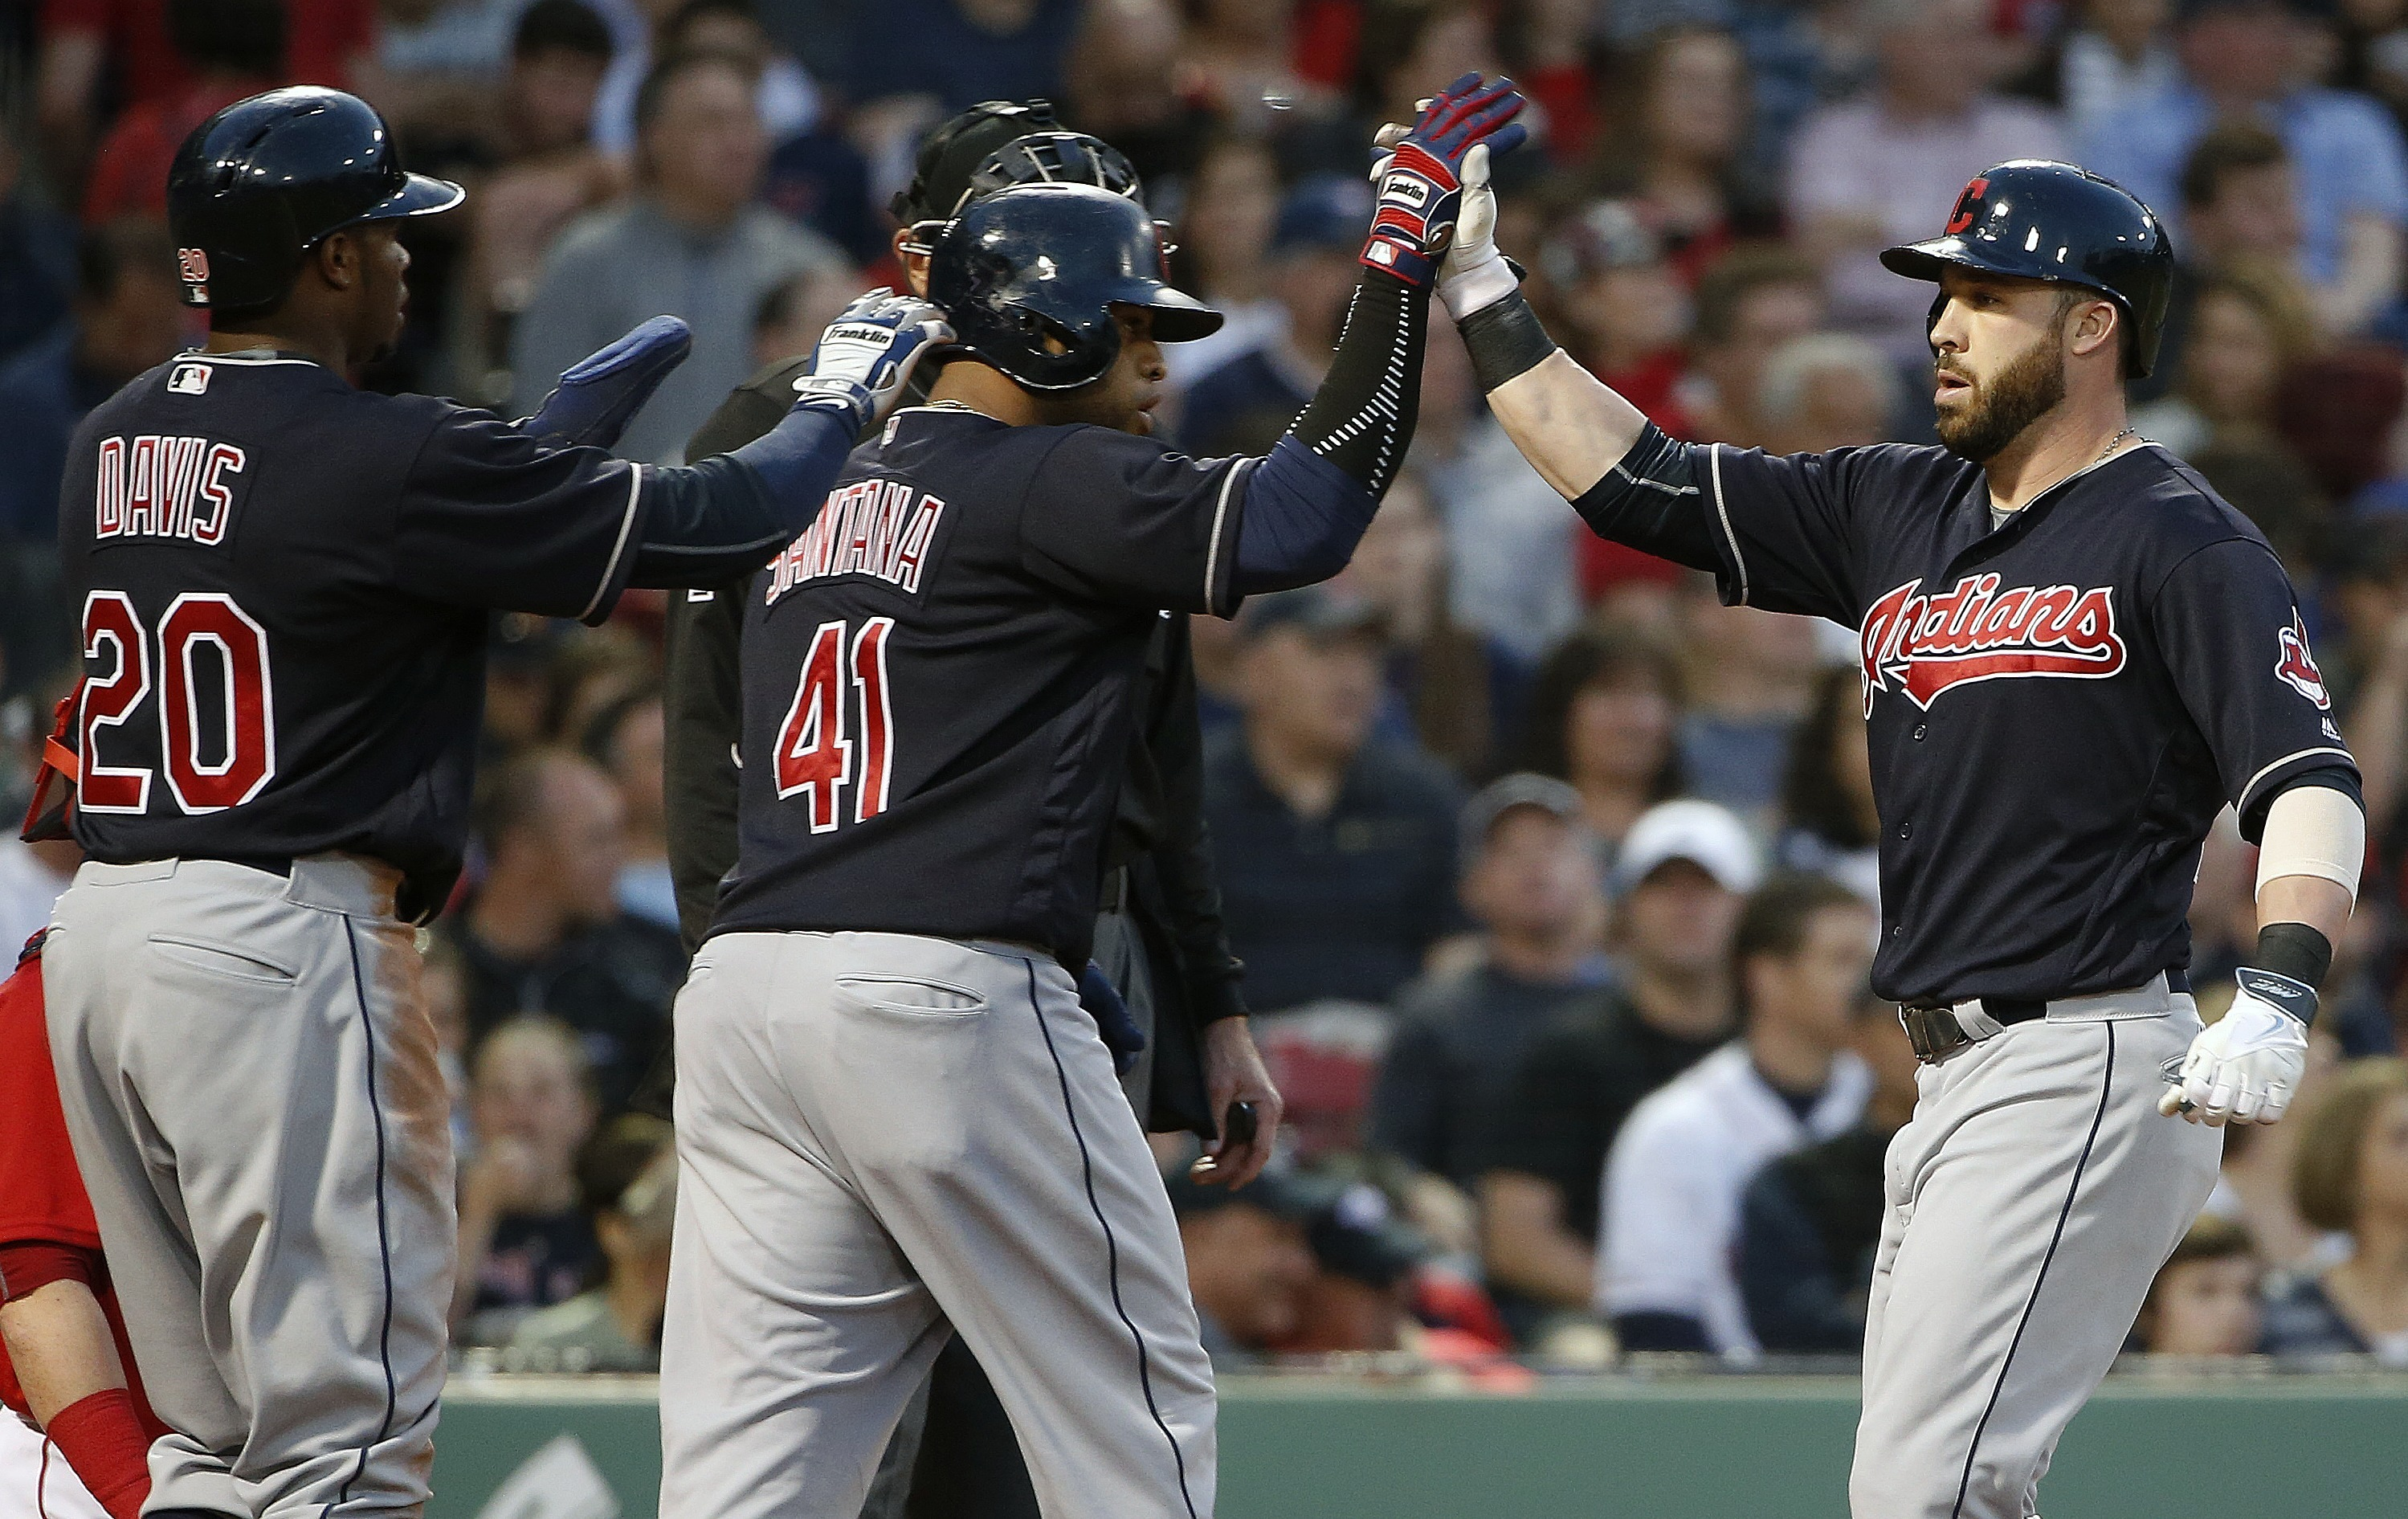 Cleveland Indians' Jason Kipnis, right, celebrates his three-run home run that also drove in Rajai Davis (20) and Carlos Santana (41) during the third inning of a baseball game against the Boston Red Sox in Boston, Friday, May 20, 2016. (AP Photo/Michael